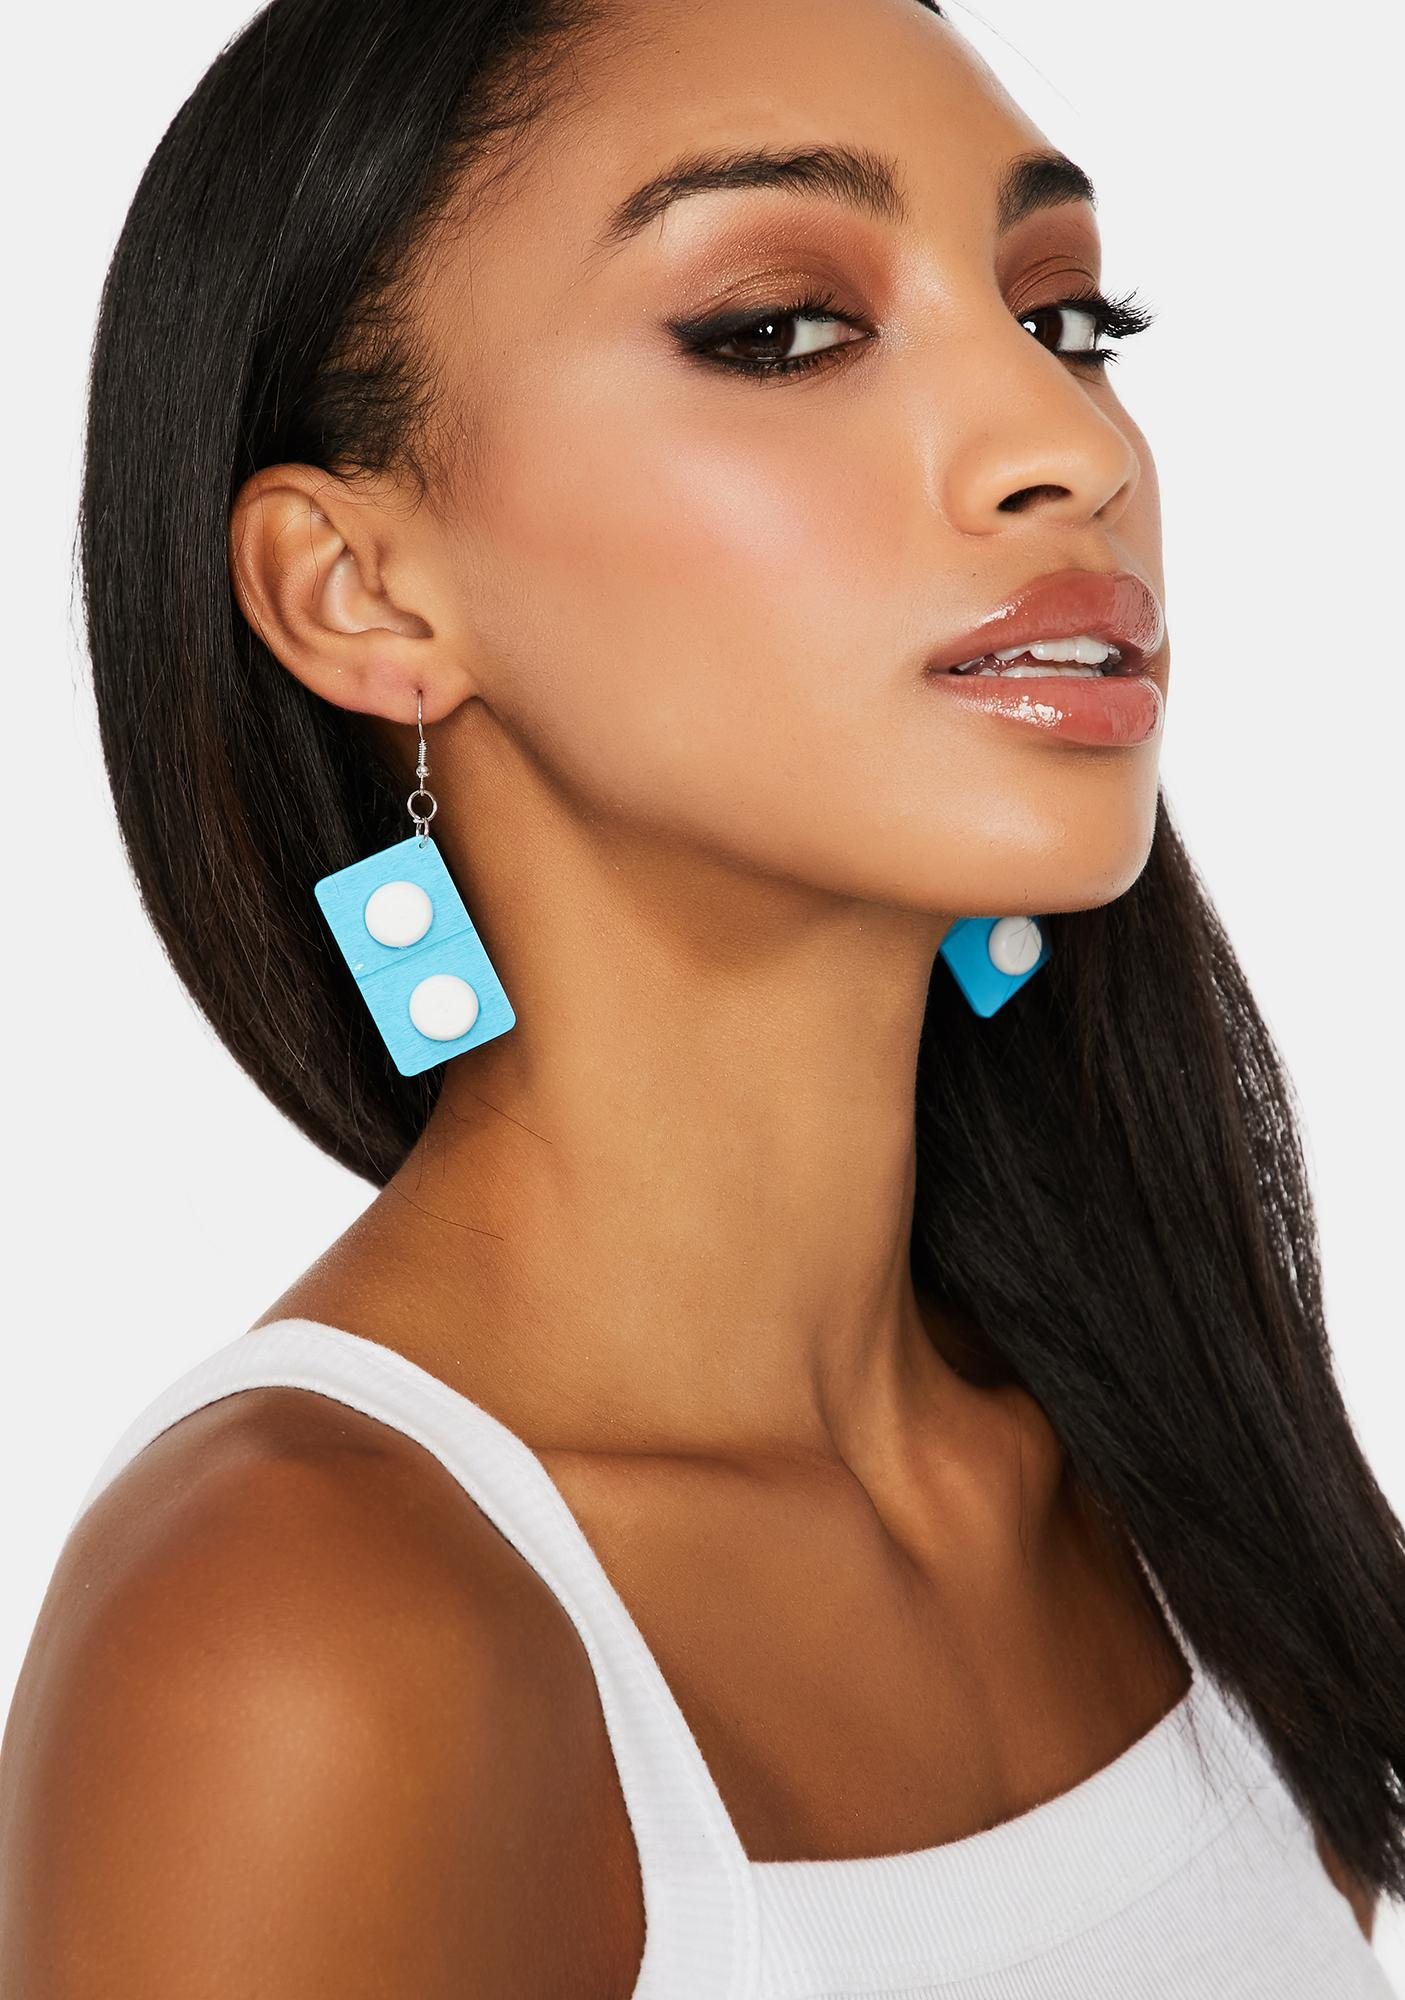 All Fall Down Domino Earrings